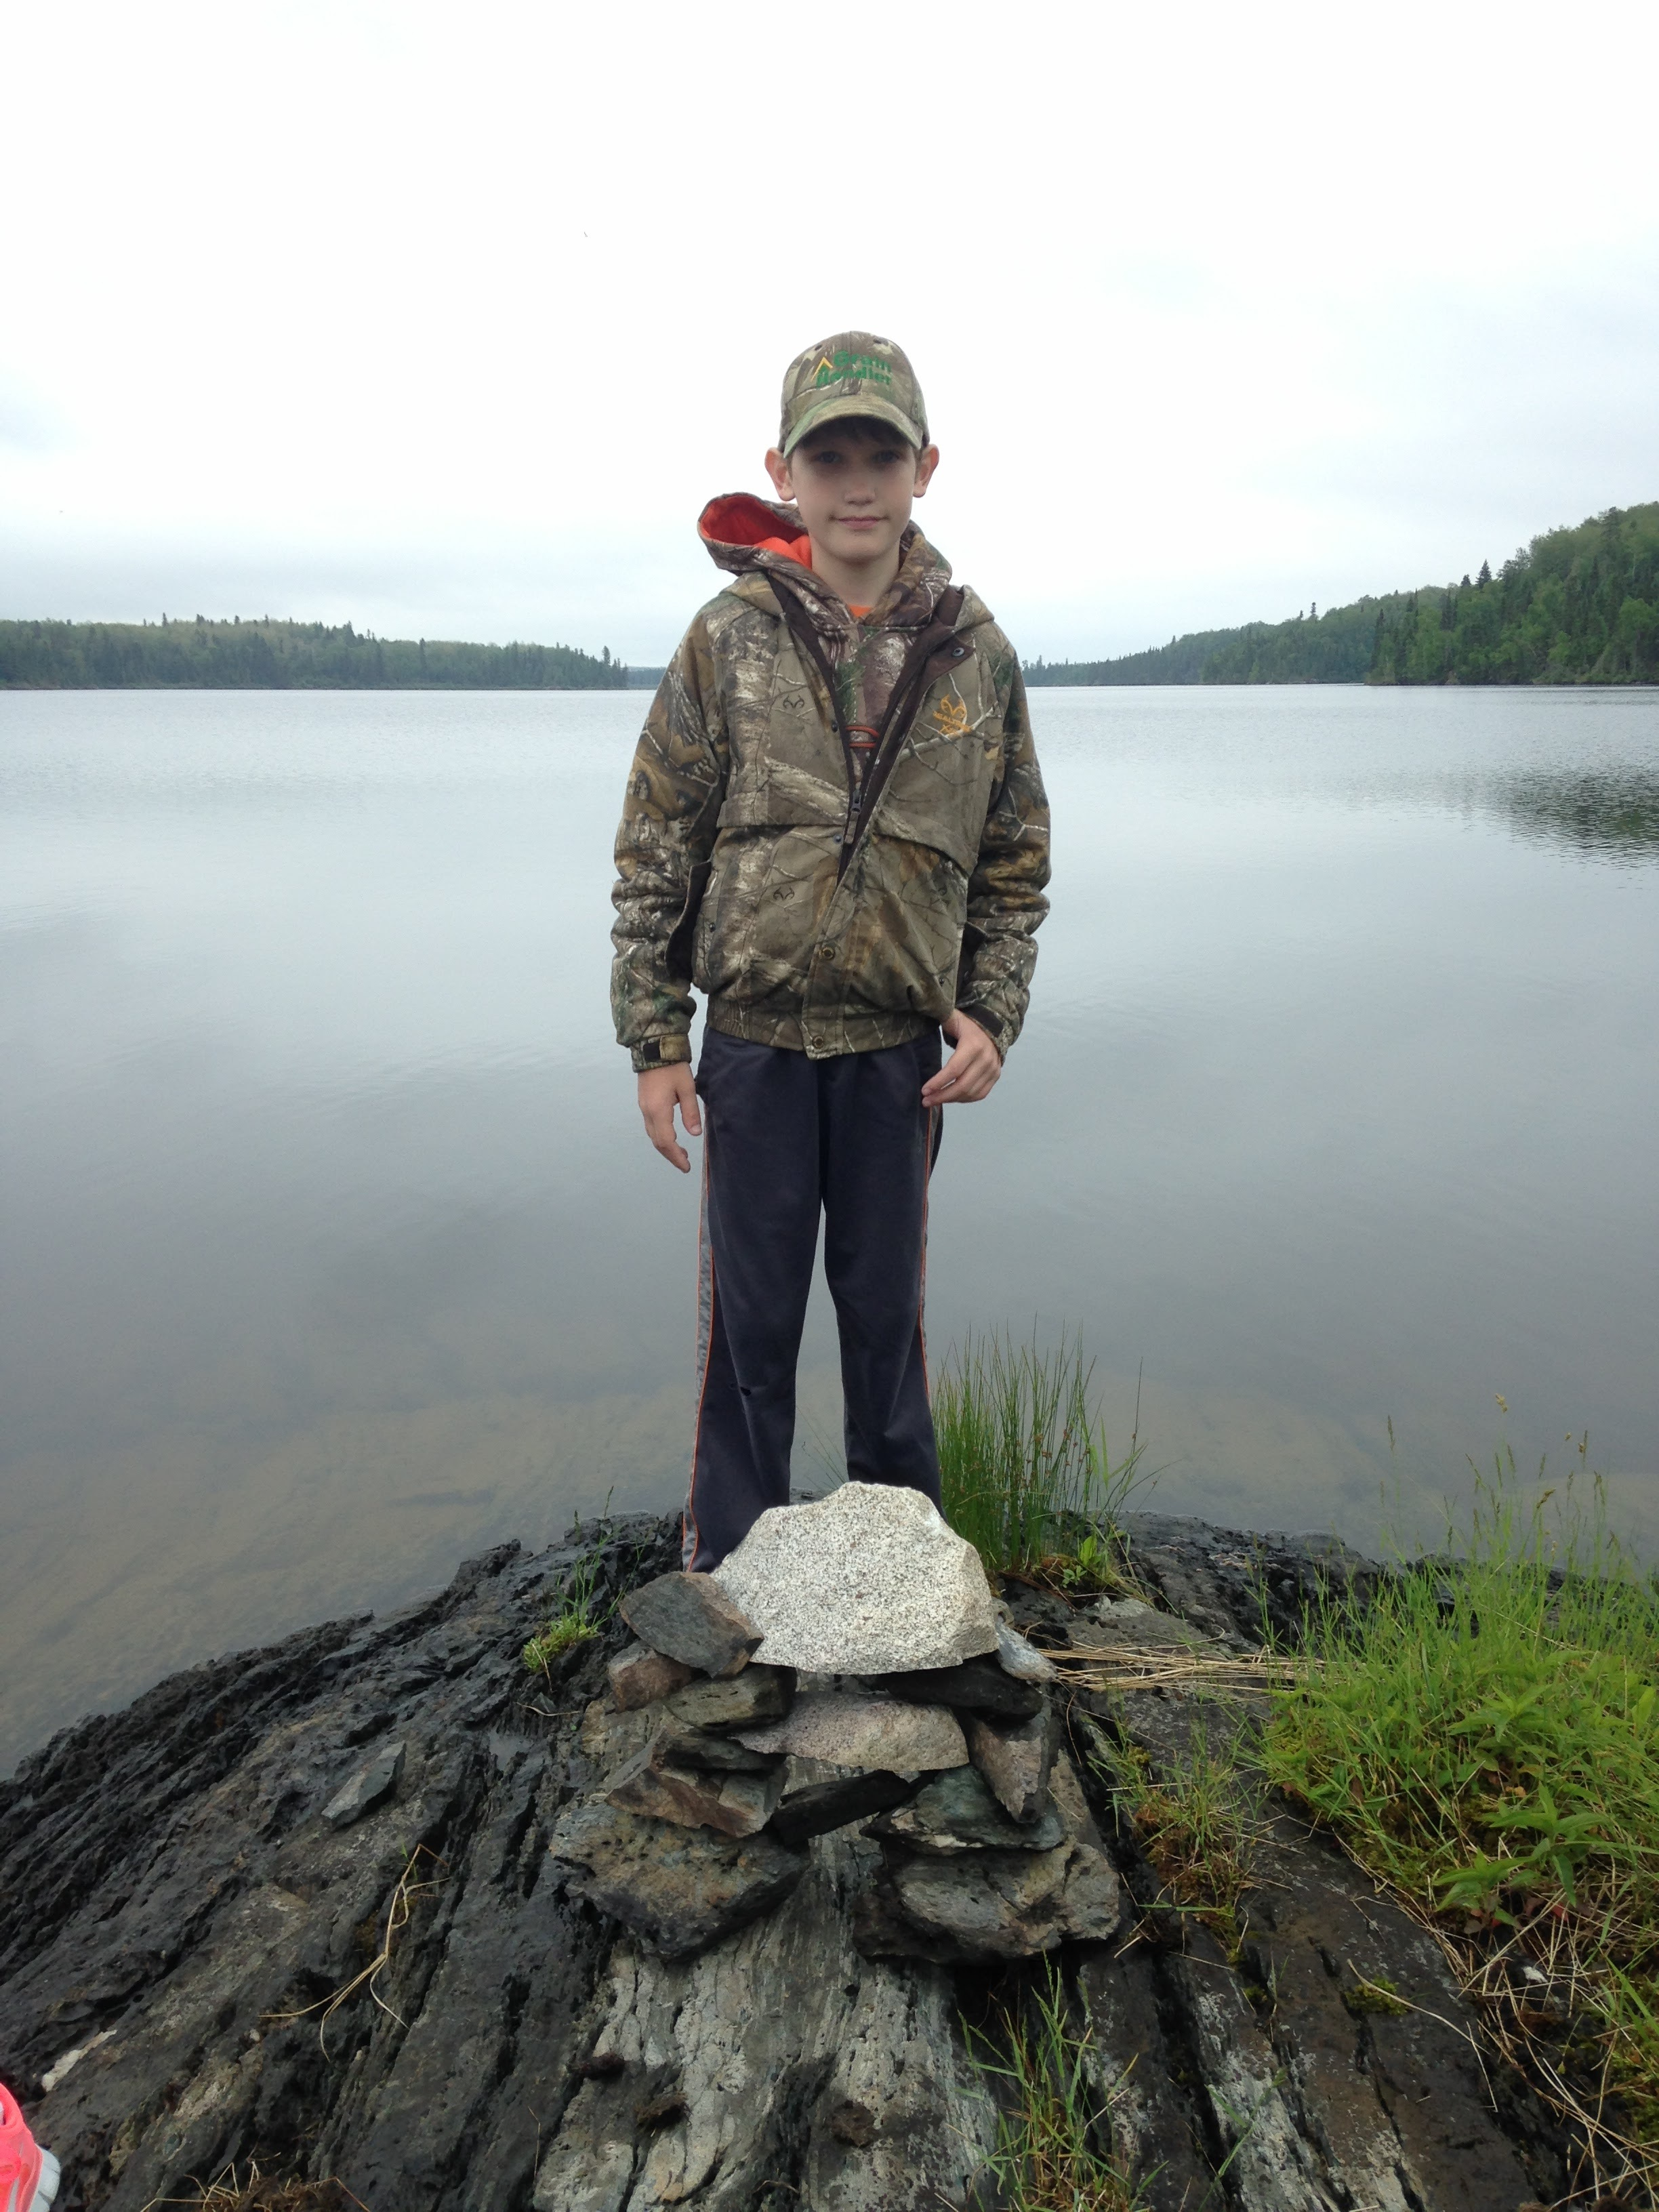 Hunter-with-Rock-Pile-Canada.jpg